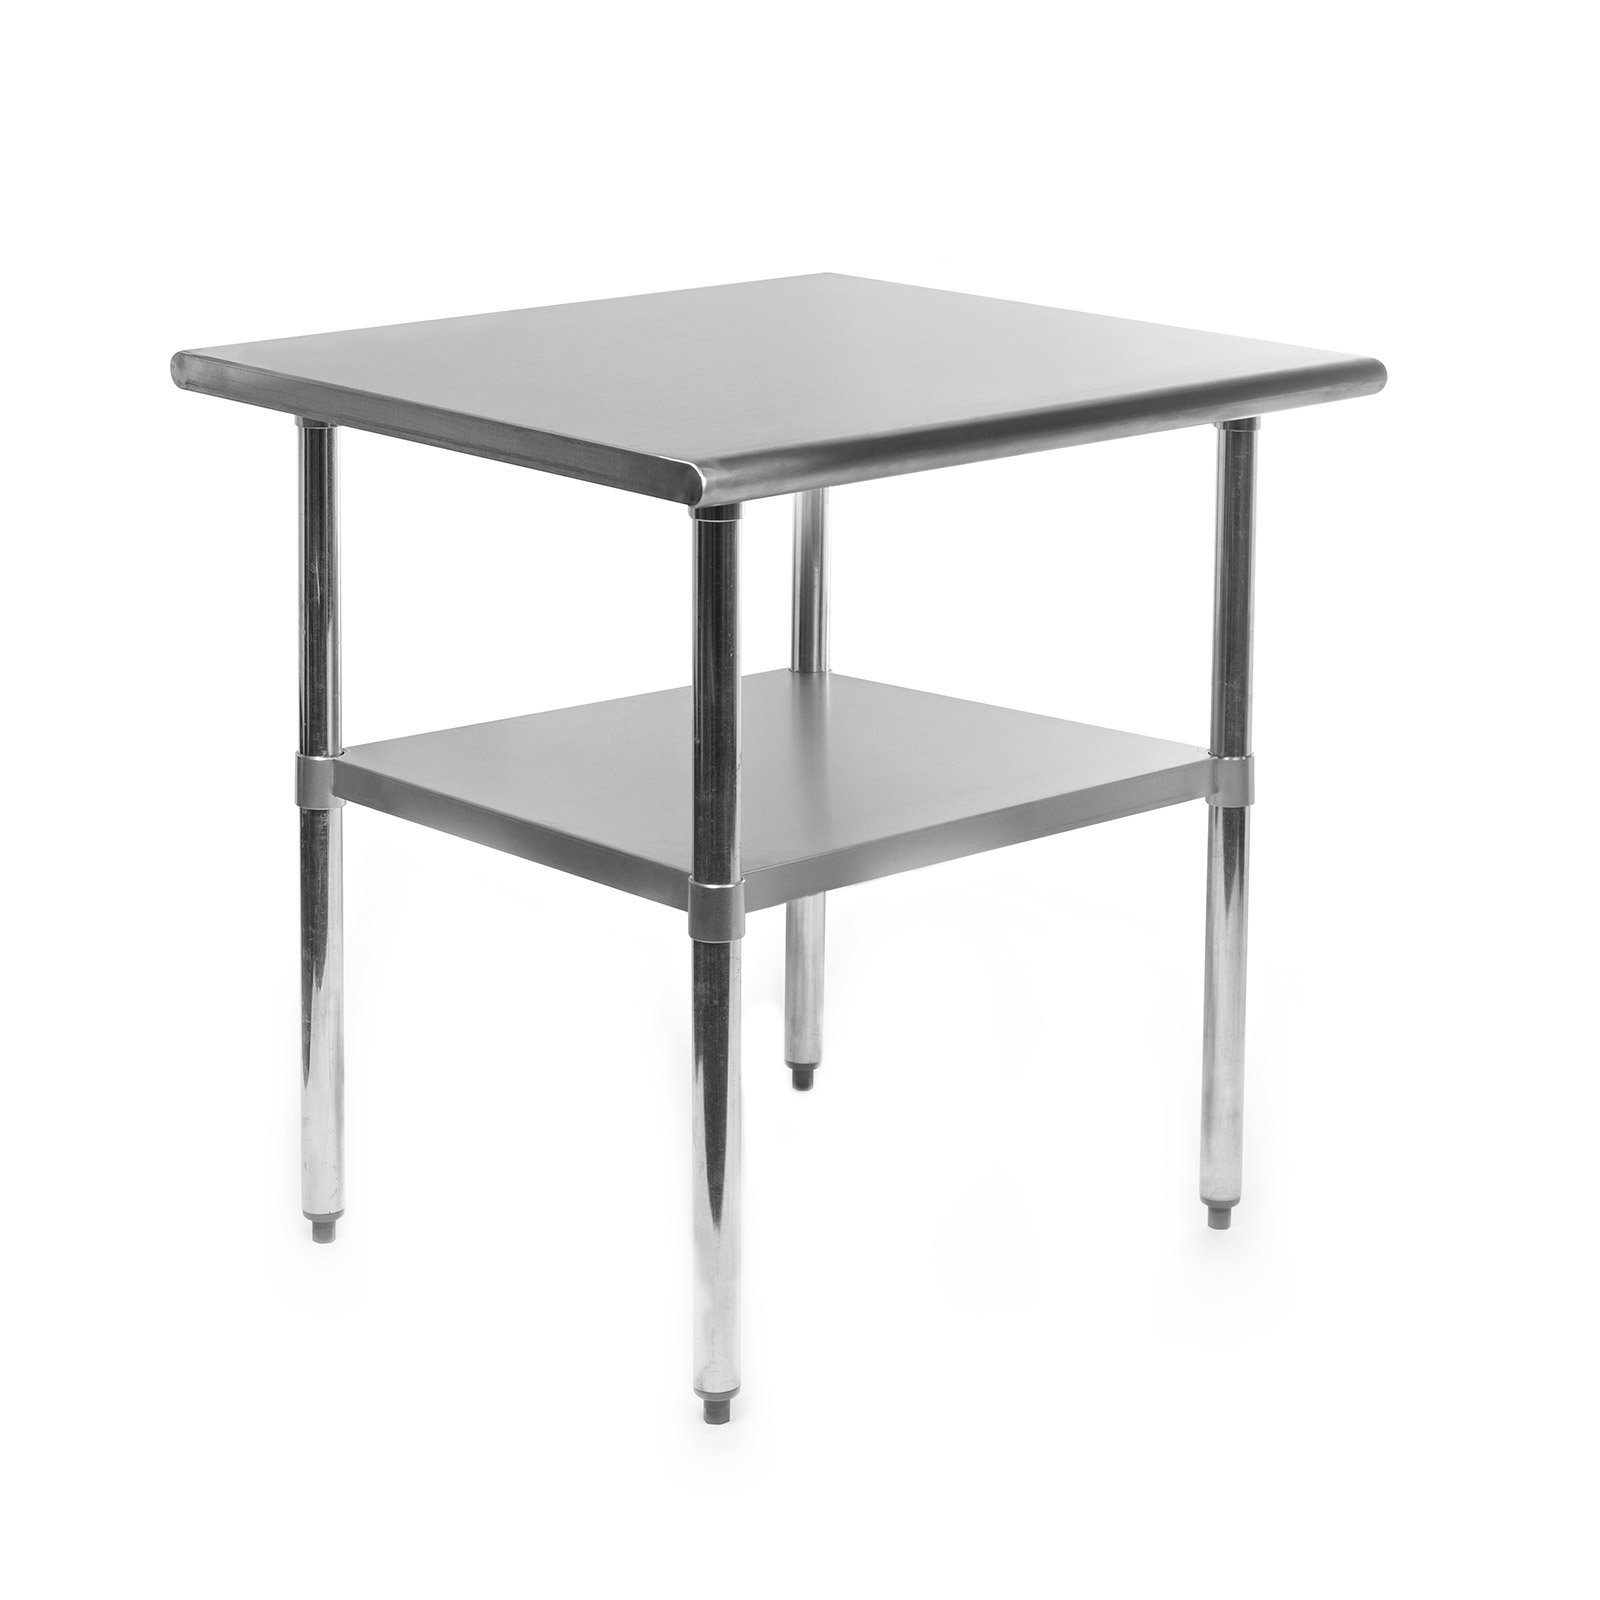 Gridmann NSF Stainless Steel Commercial Kitchen Prep & Work Table - 30 in. x 24 in. by Gridmann